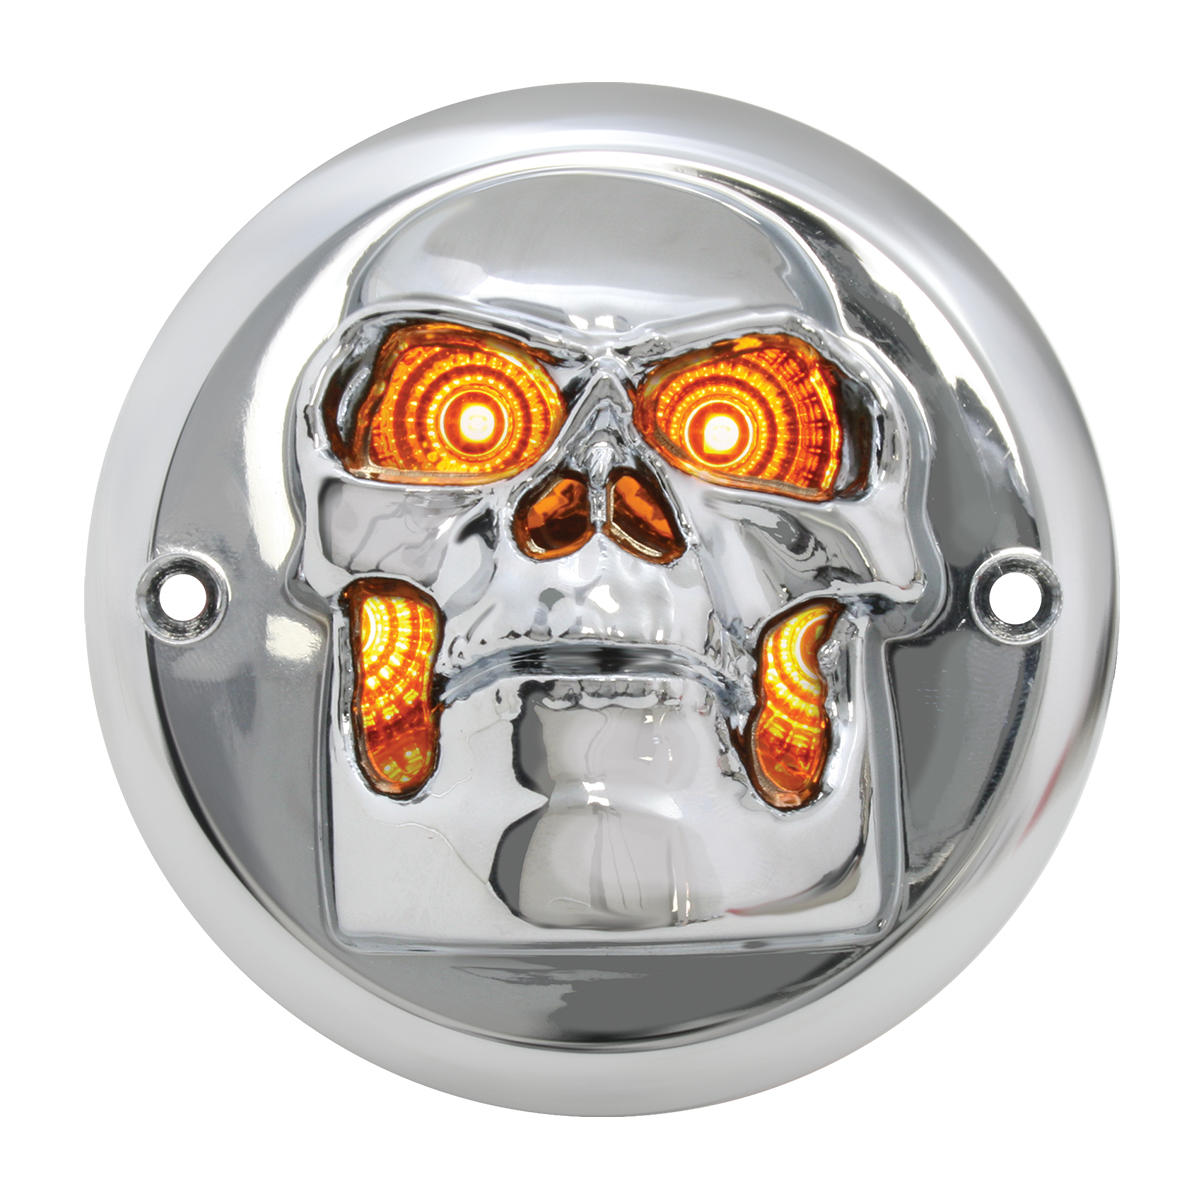 "78489 Chrome Plastic Skull Bezel for 2"" Round Light (Light Not Included)"